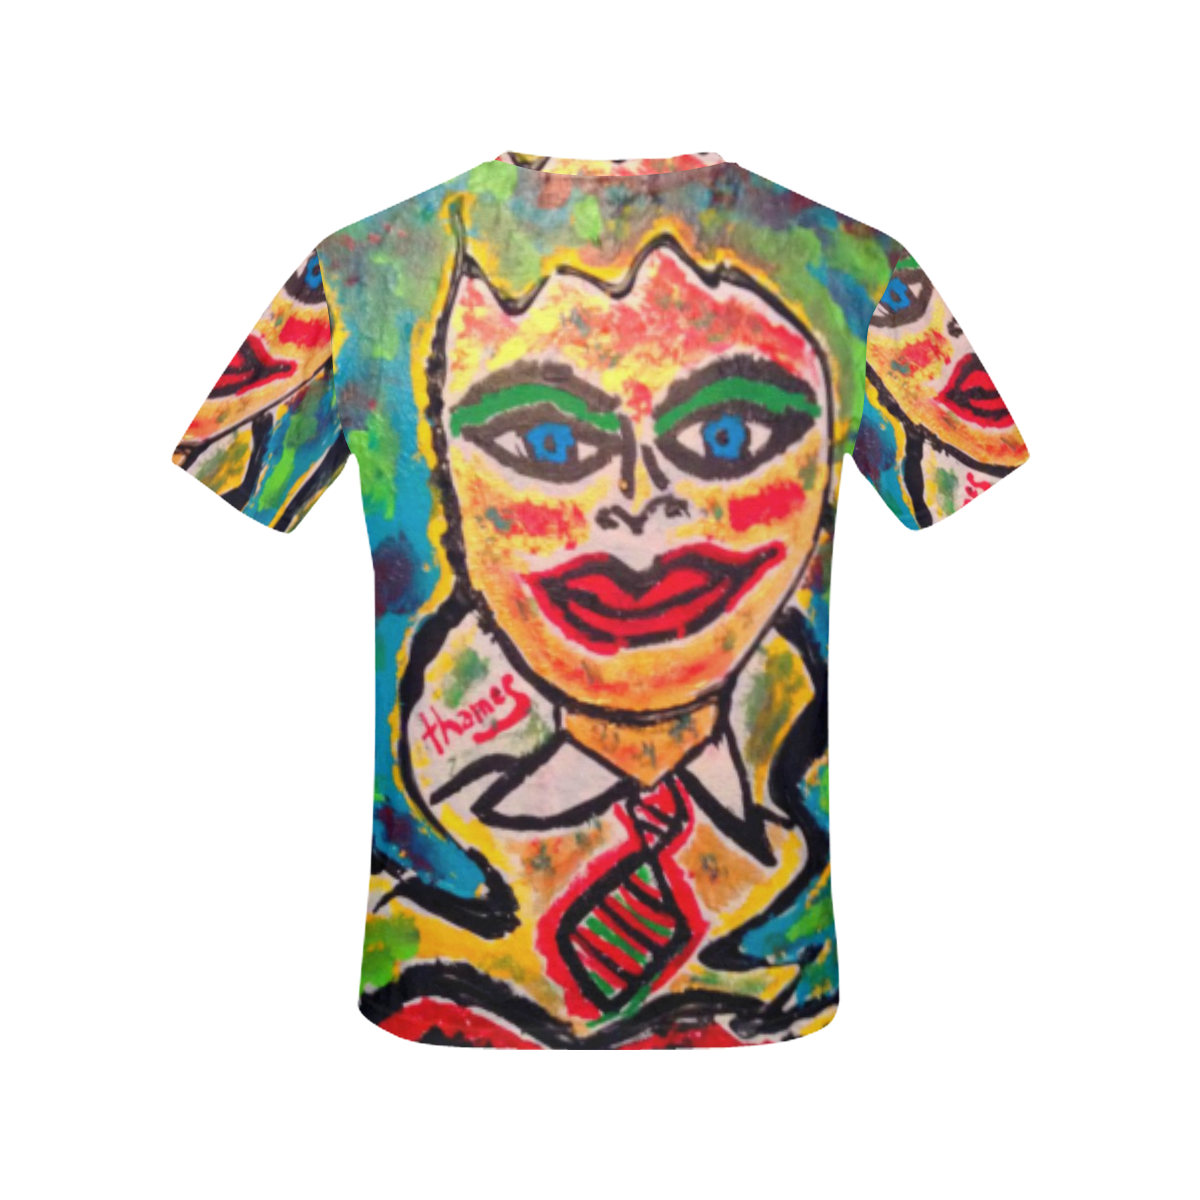 The Waitress All Over Print T-Shirt All Over Print T-Shirt for Women (USA Size) (Model T40)